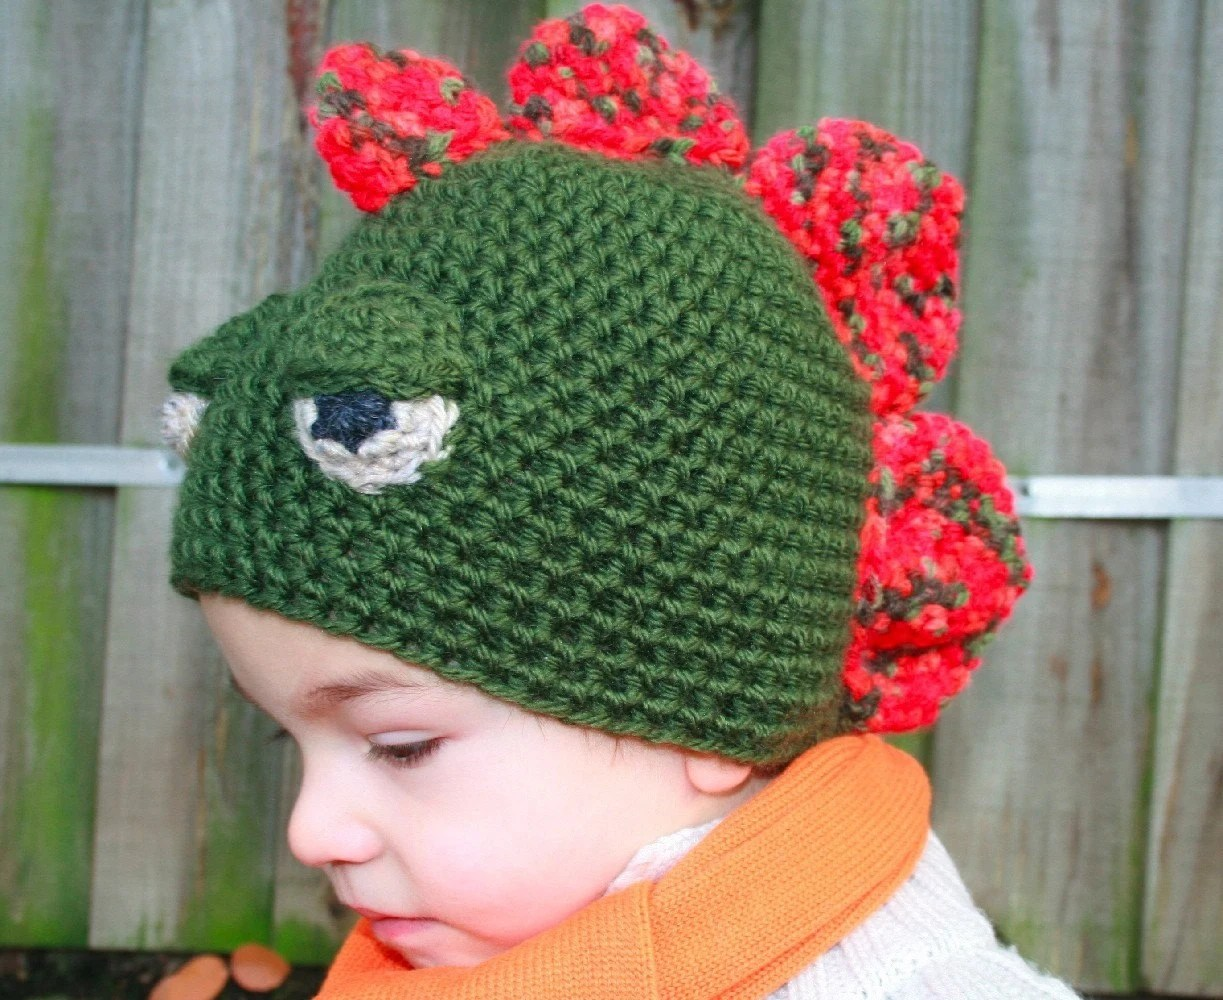 PDF PATTERN Crochet boys dinosaur hat includes 4 sizes from newborn to adult - you are welcome to sell your work from this pattern